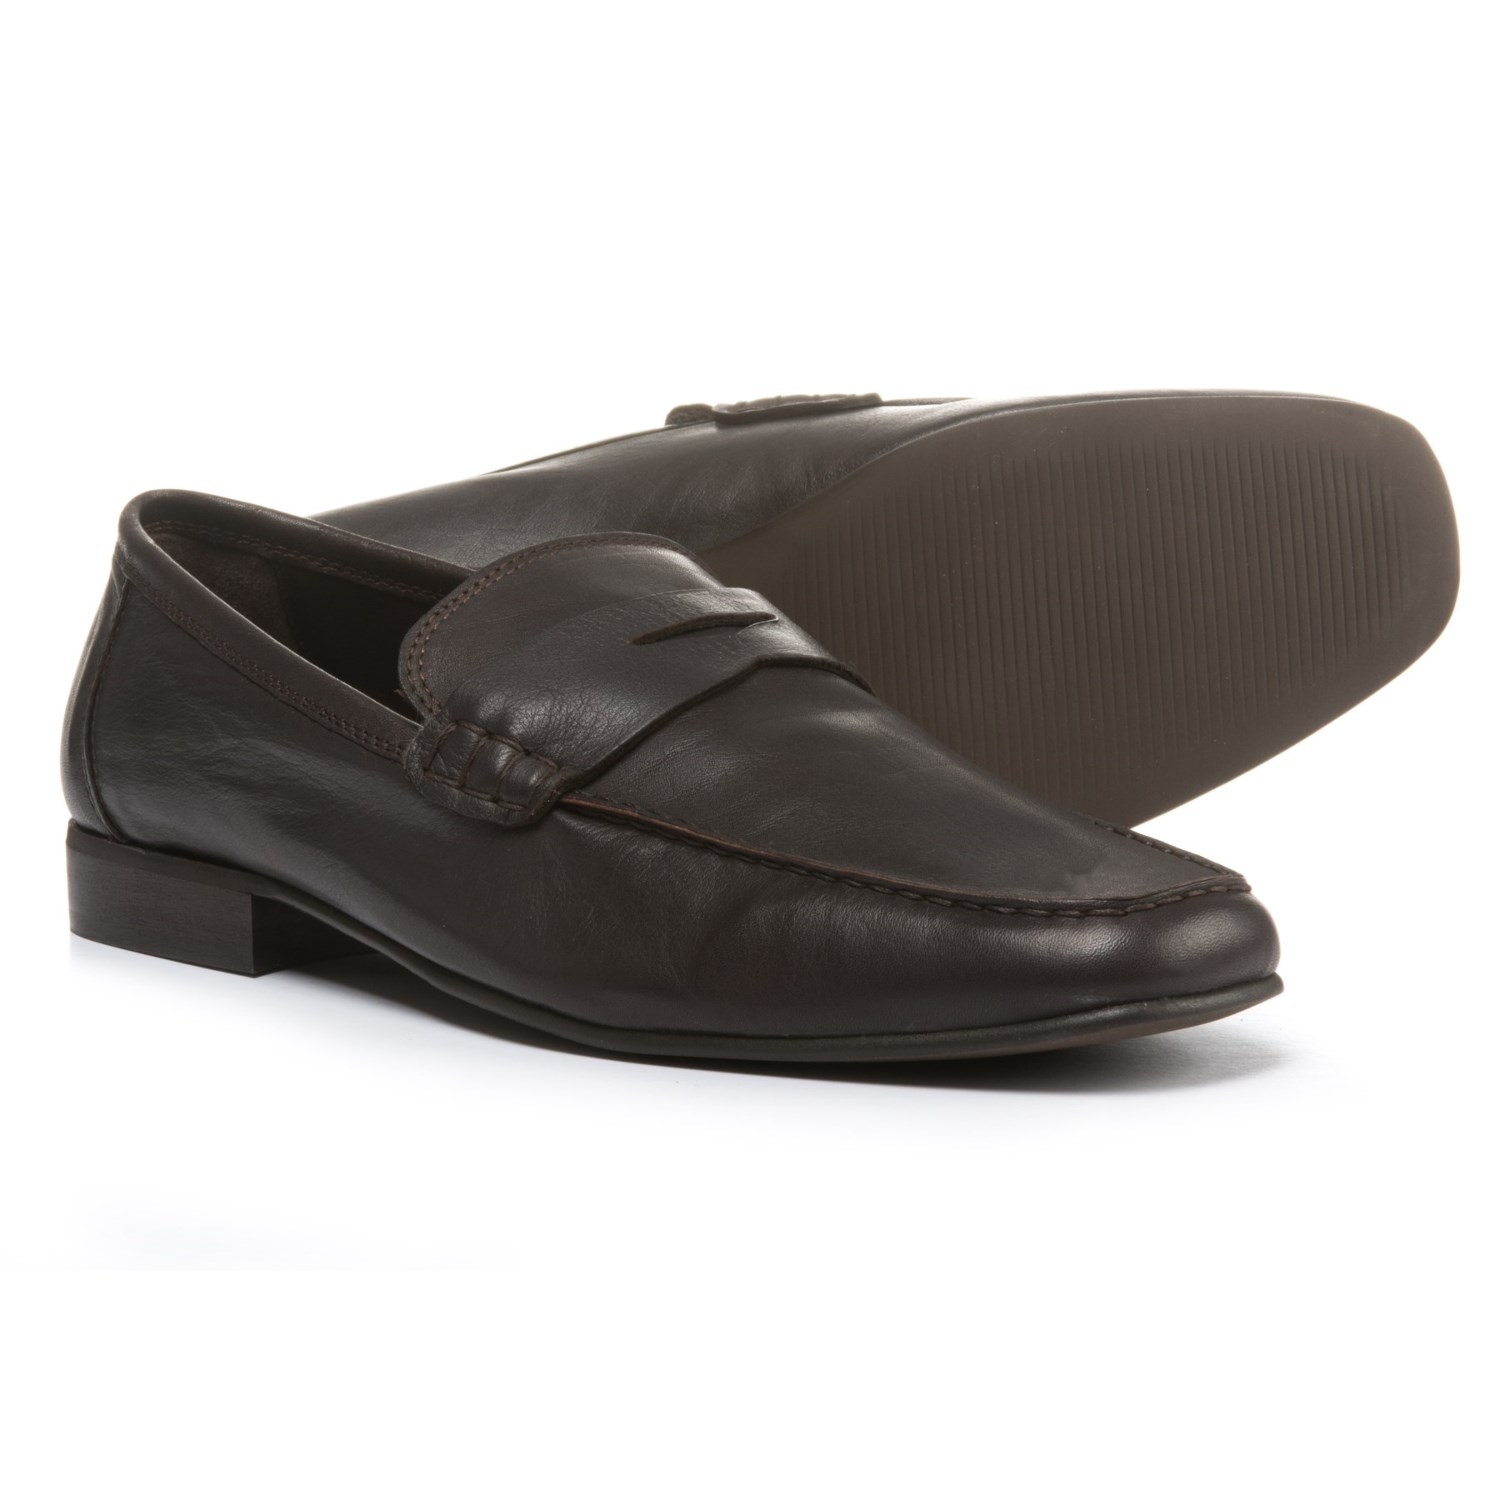 A. Testoni Diffusion Leather Loafers (For Men)